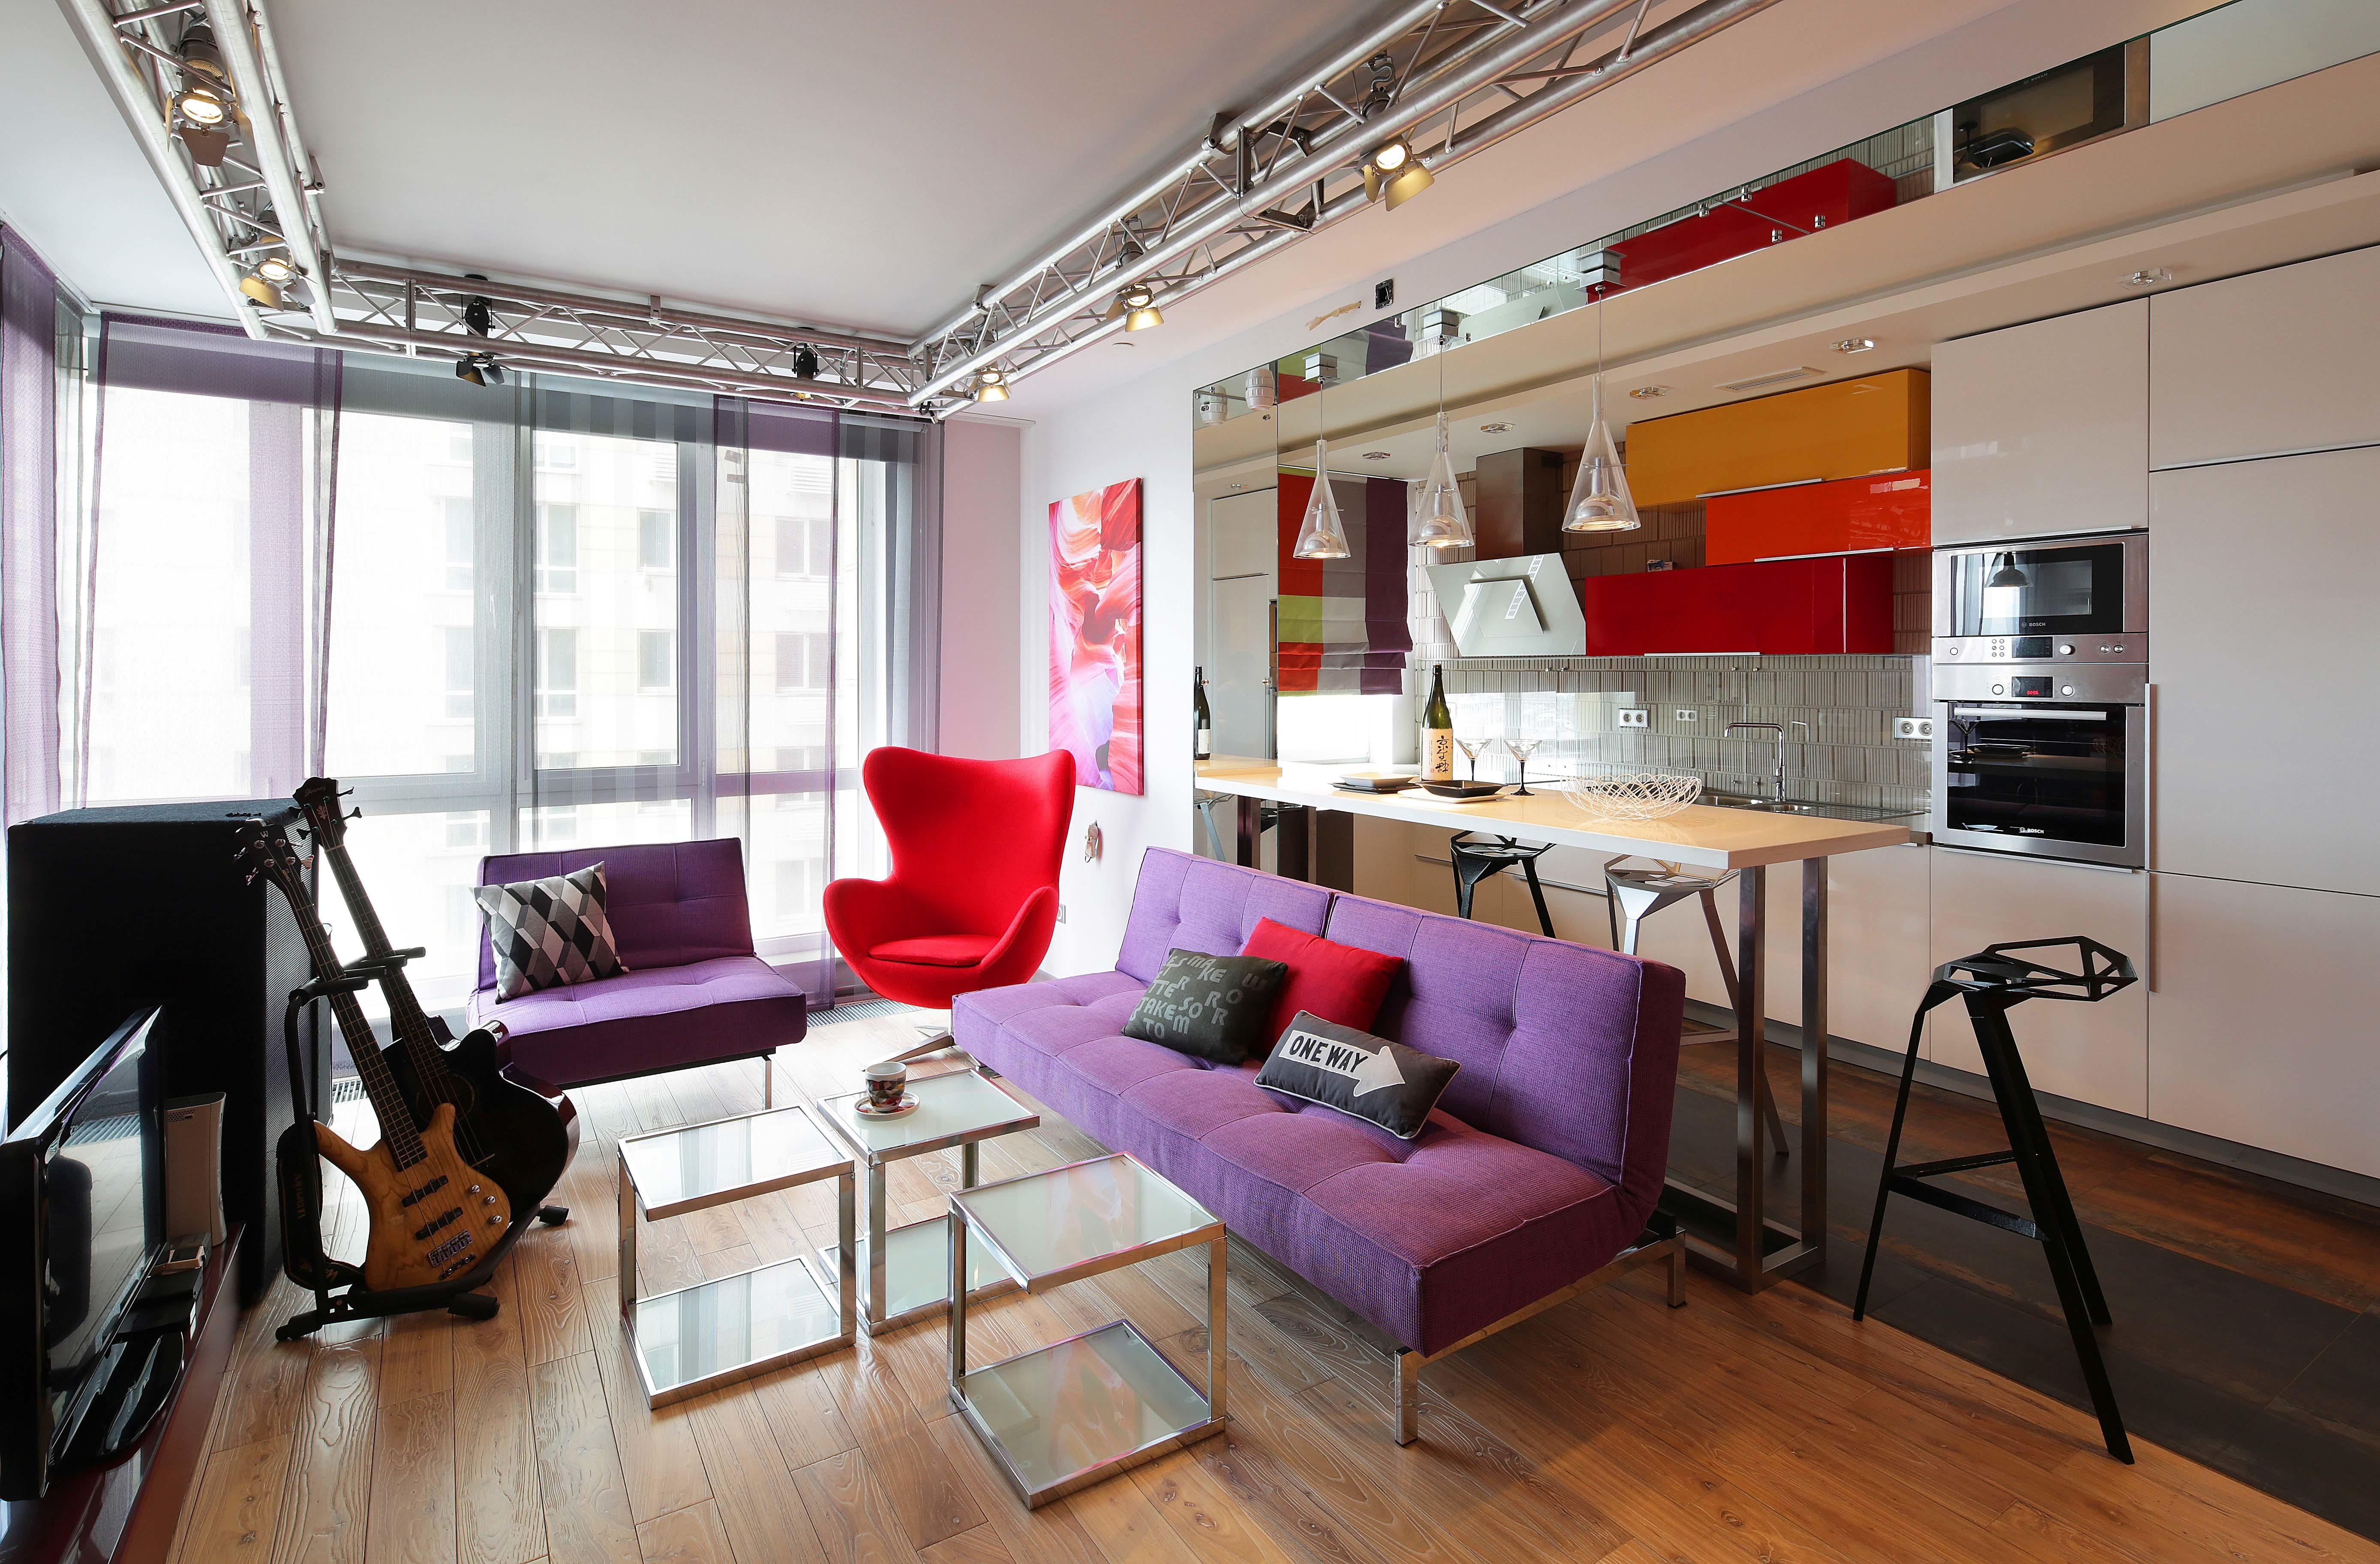 Eclectic Interior Design Style Universalism Give